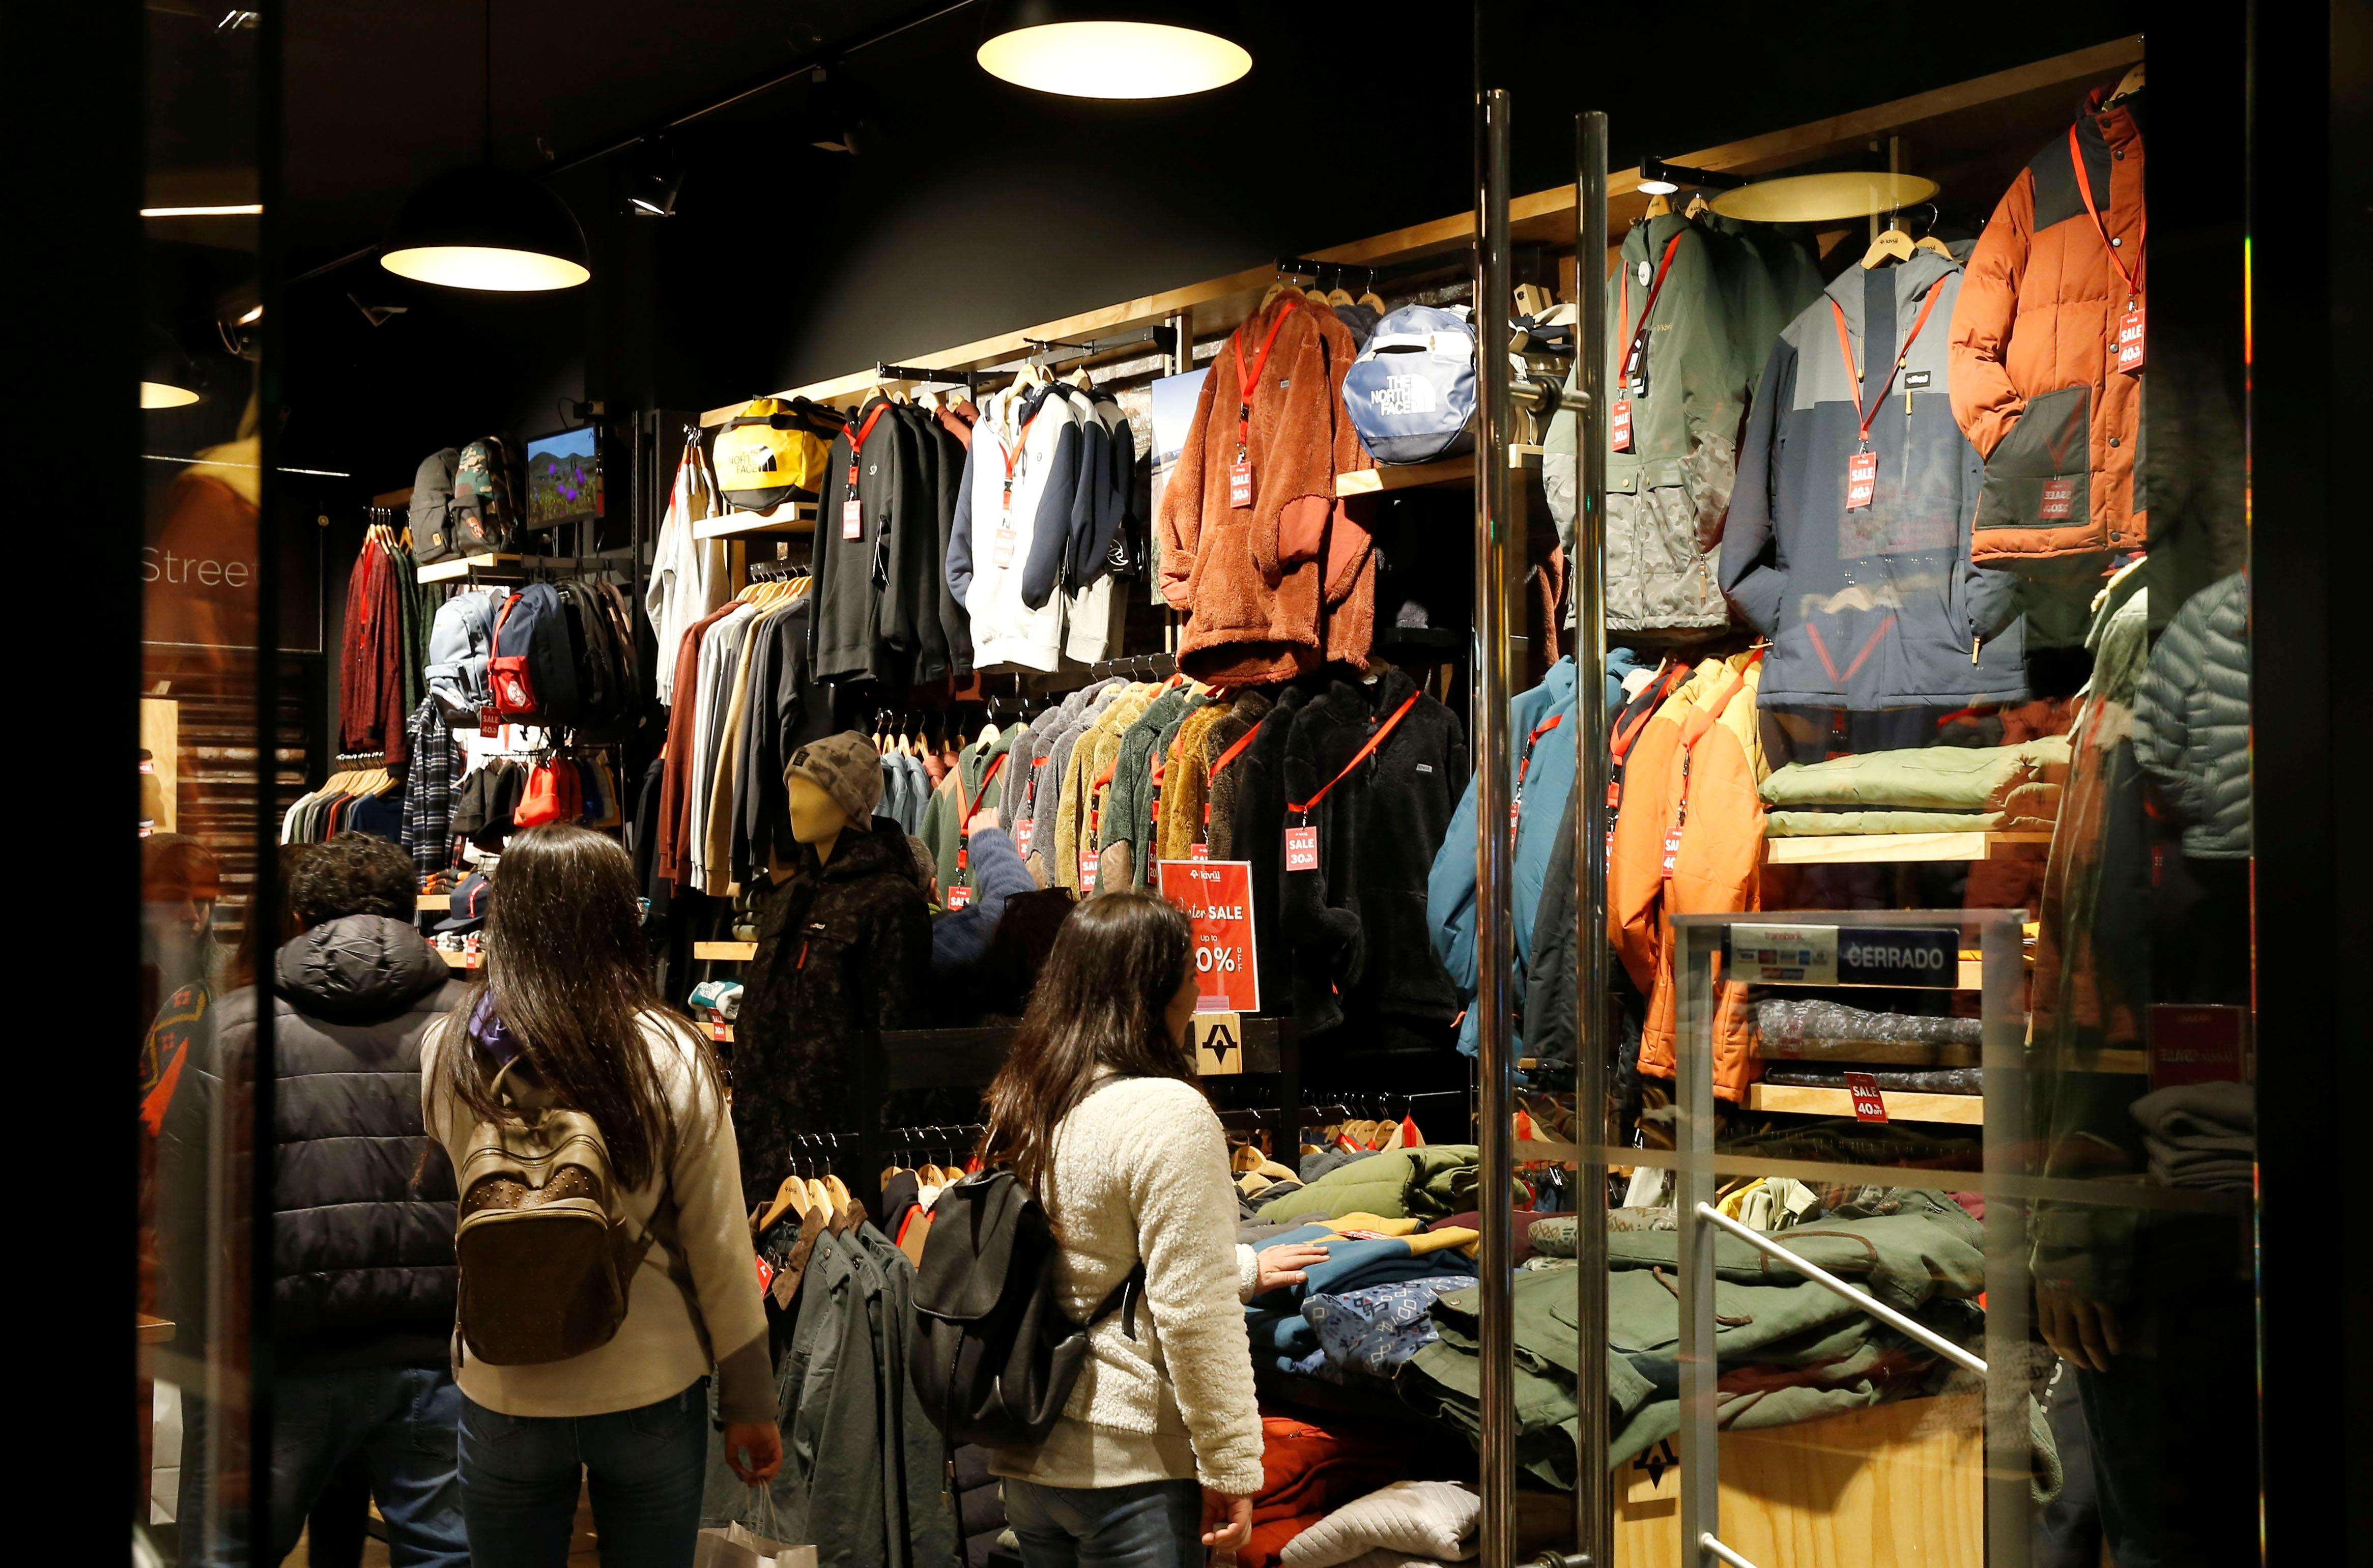 Chile consumer prices barely budge in November amid unrest